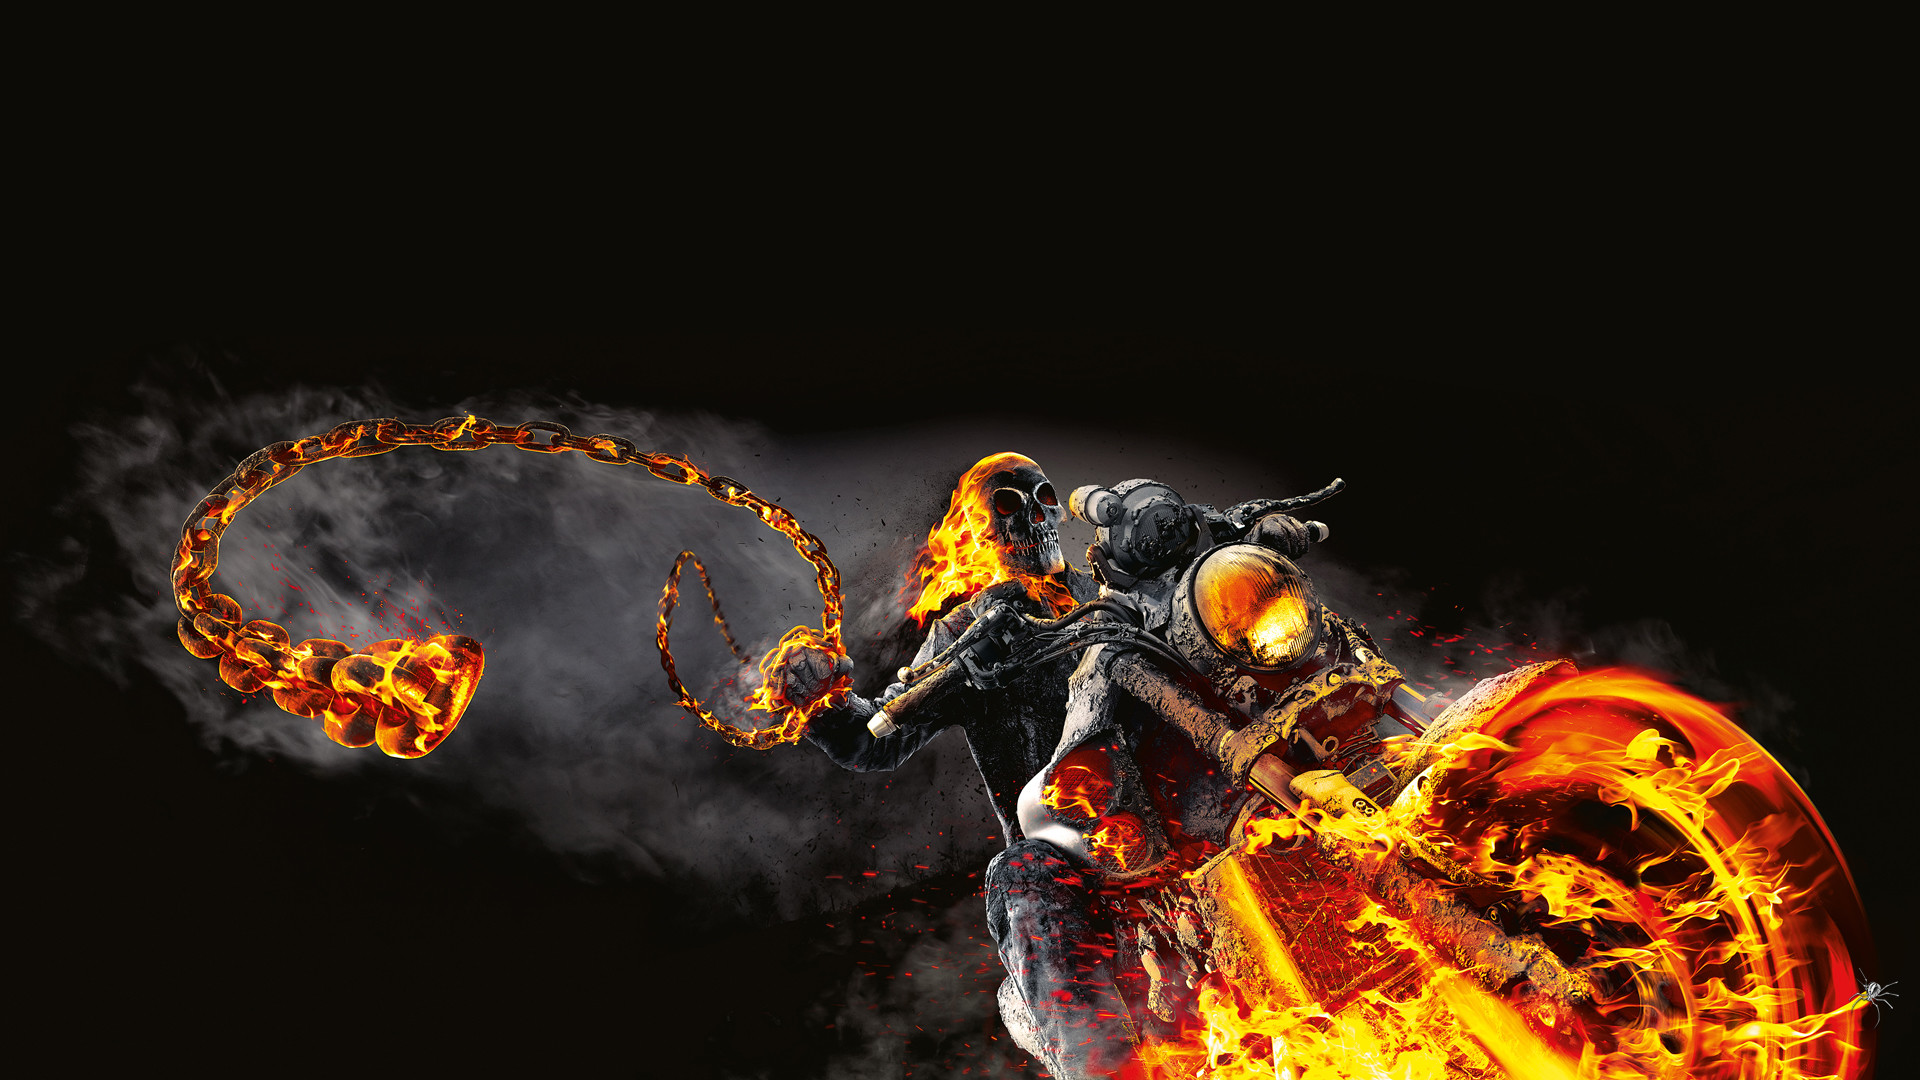 wallpaper ghost rider 2 ·①